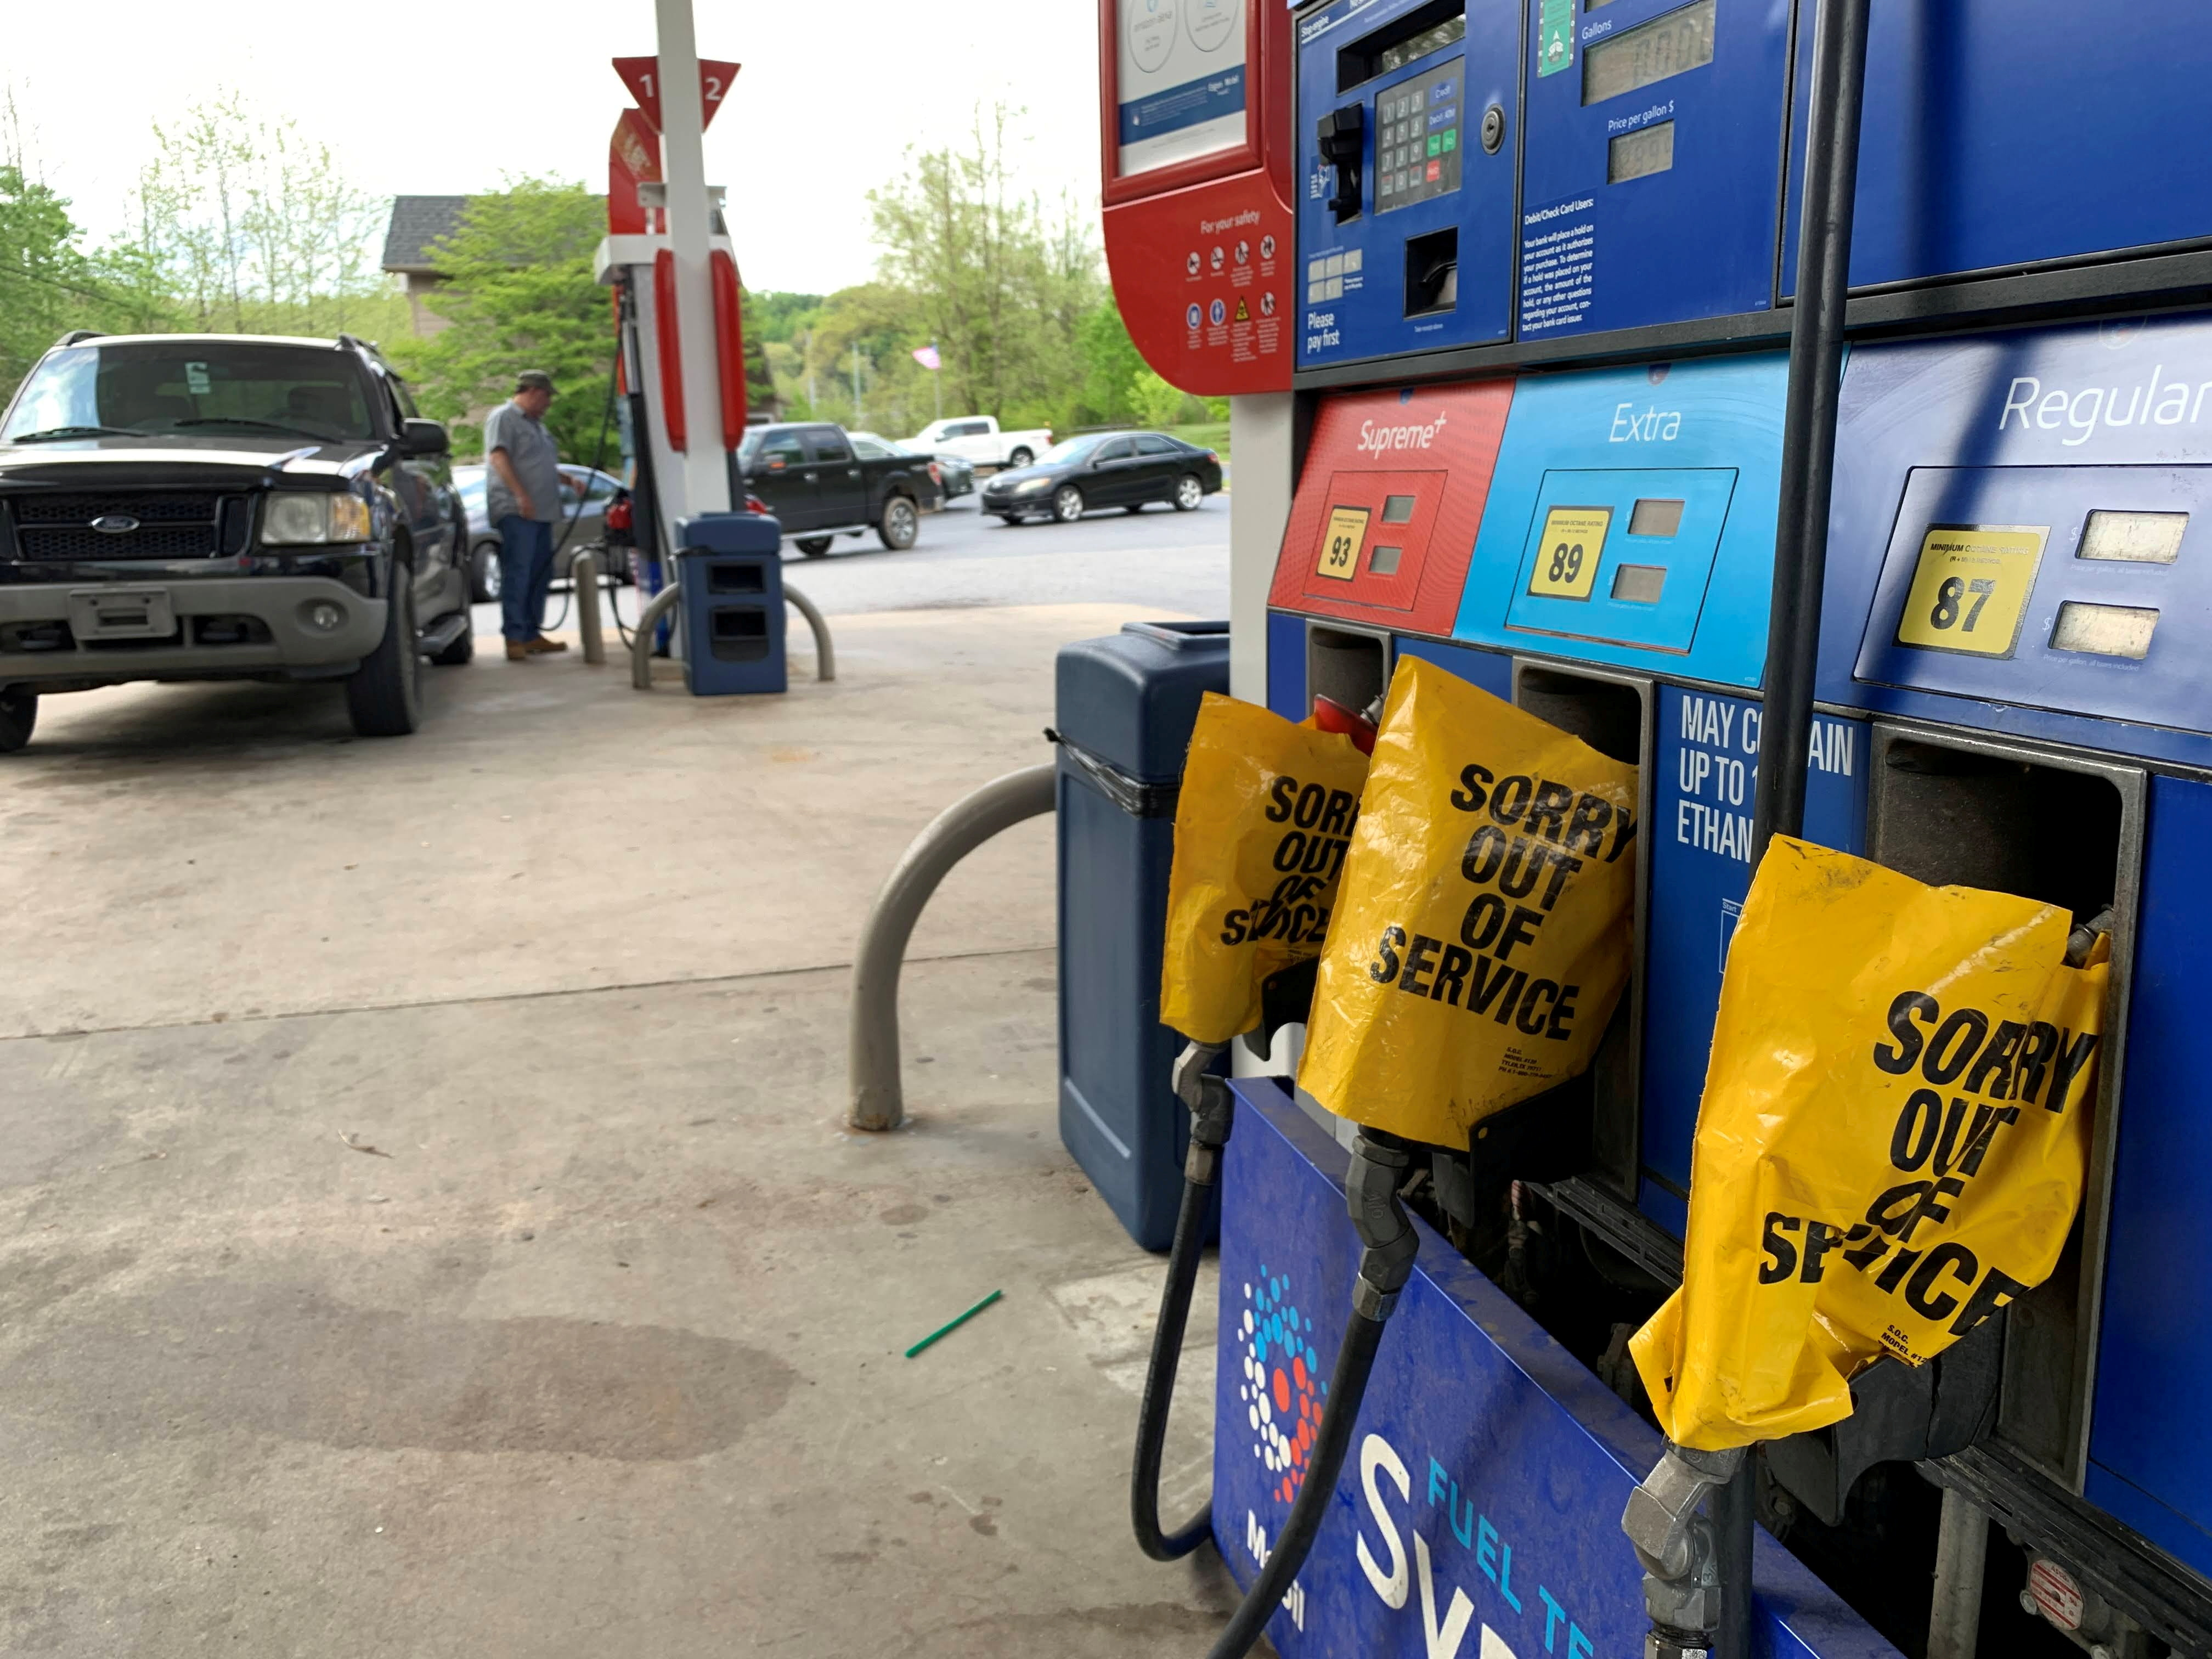 Out of service fuel nozzles are covered in plastic on a gas pump at a gas station in Waynesville, North Carolina, after a gasoline supply crunch caused by the Colonial Pipeline hack, May 11, 2021. Martin Brossman via REUTERS